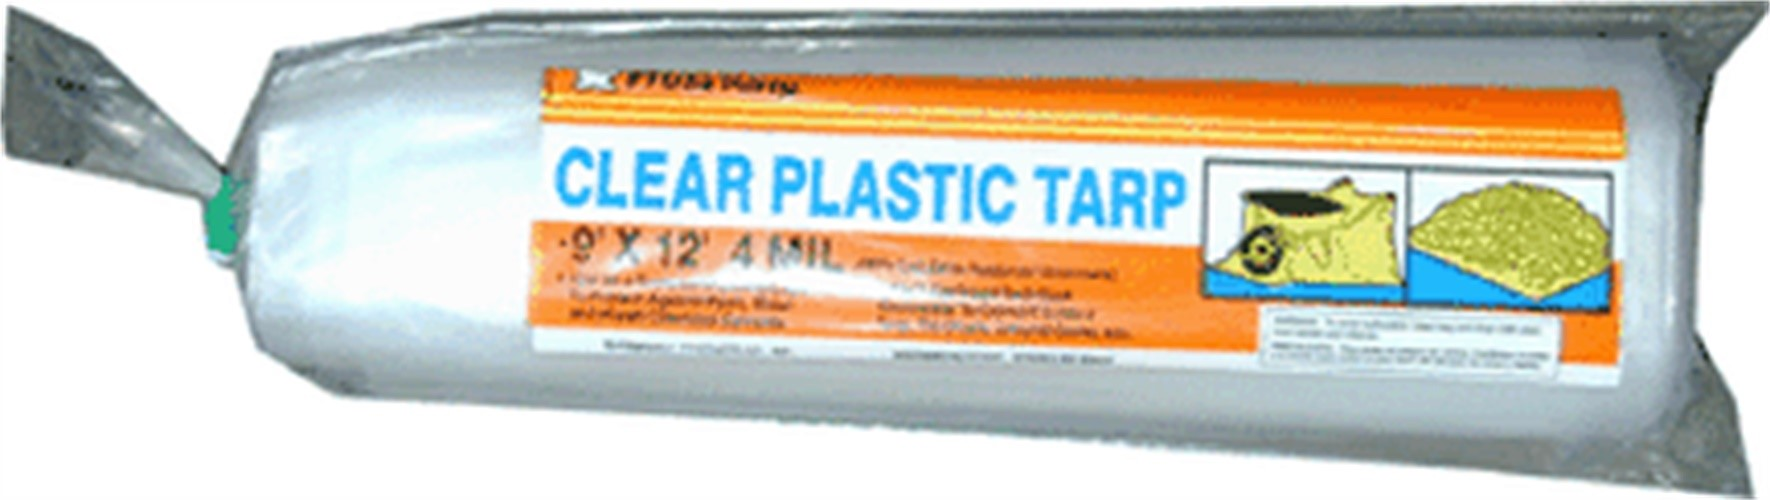 p912g 9u0027 x 12u0027 4 mil clear plastic tarp poly roll drop cloth w